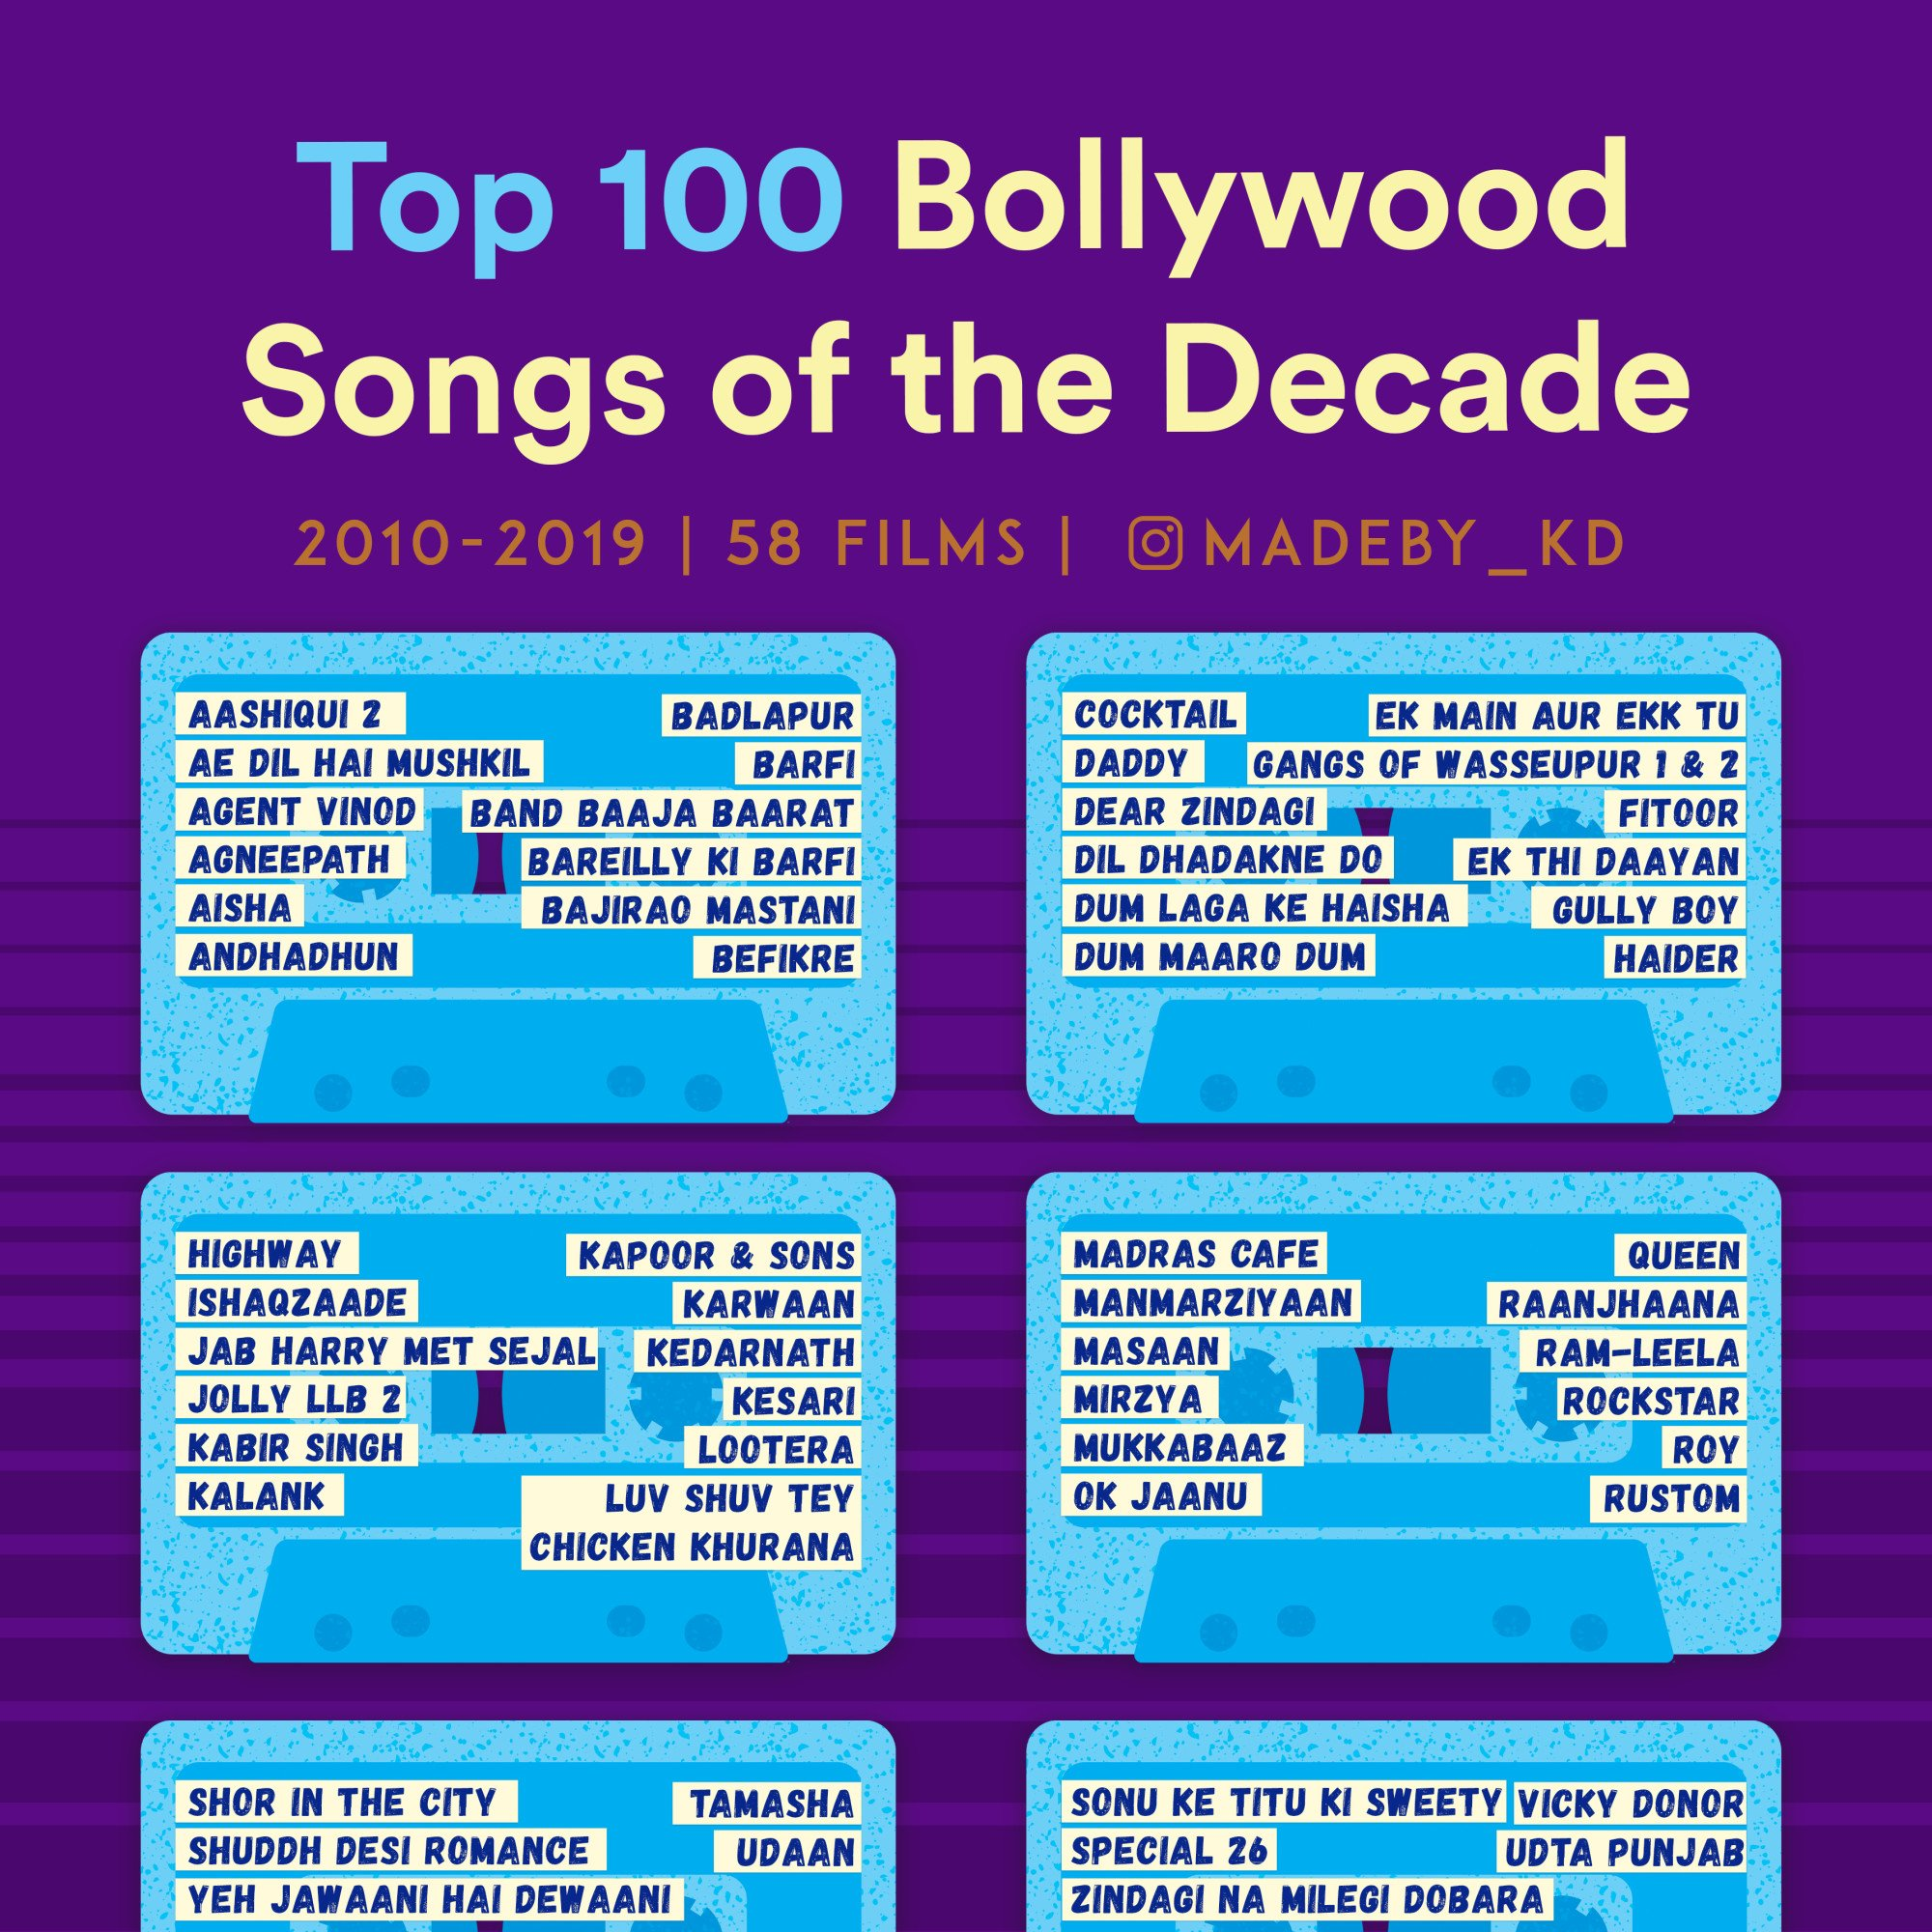 Top 100 Bollywood Songs of the Decade (2010-2019)